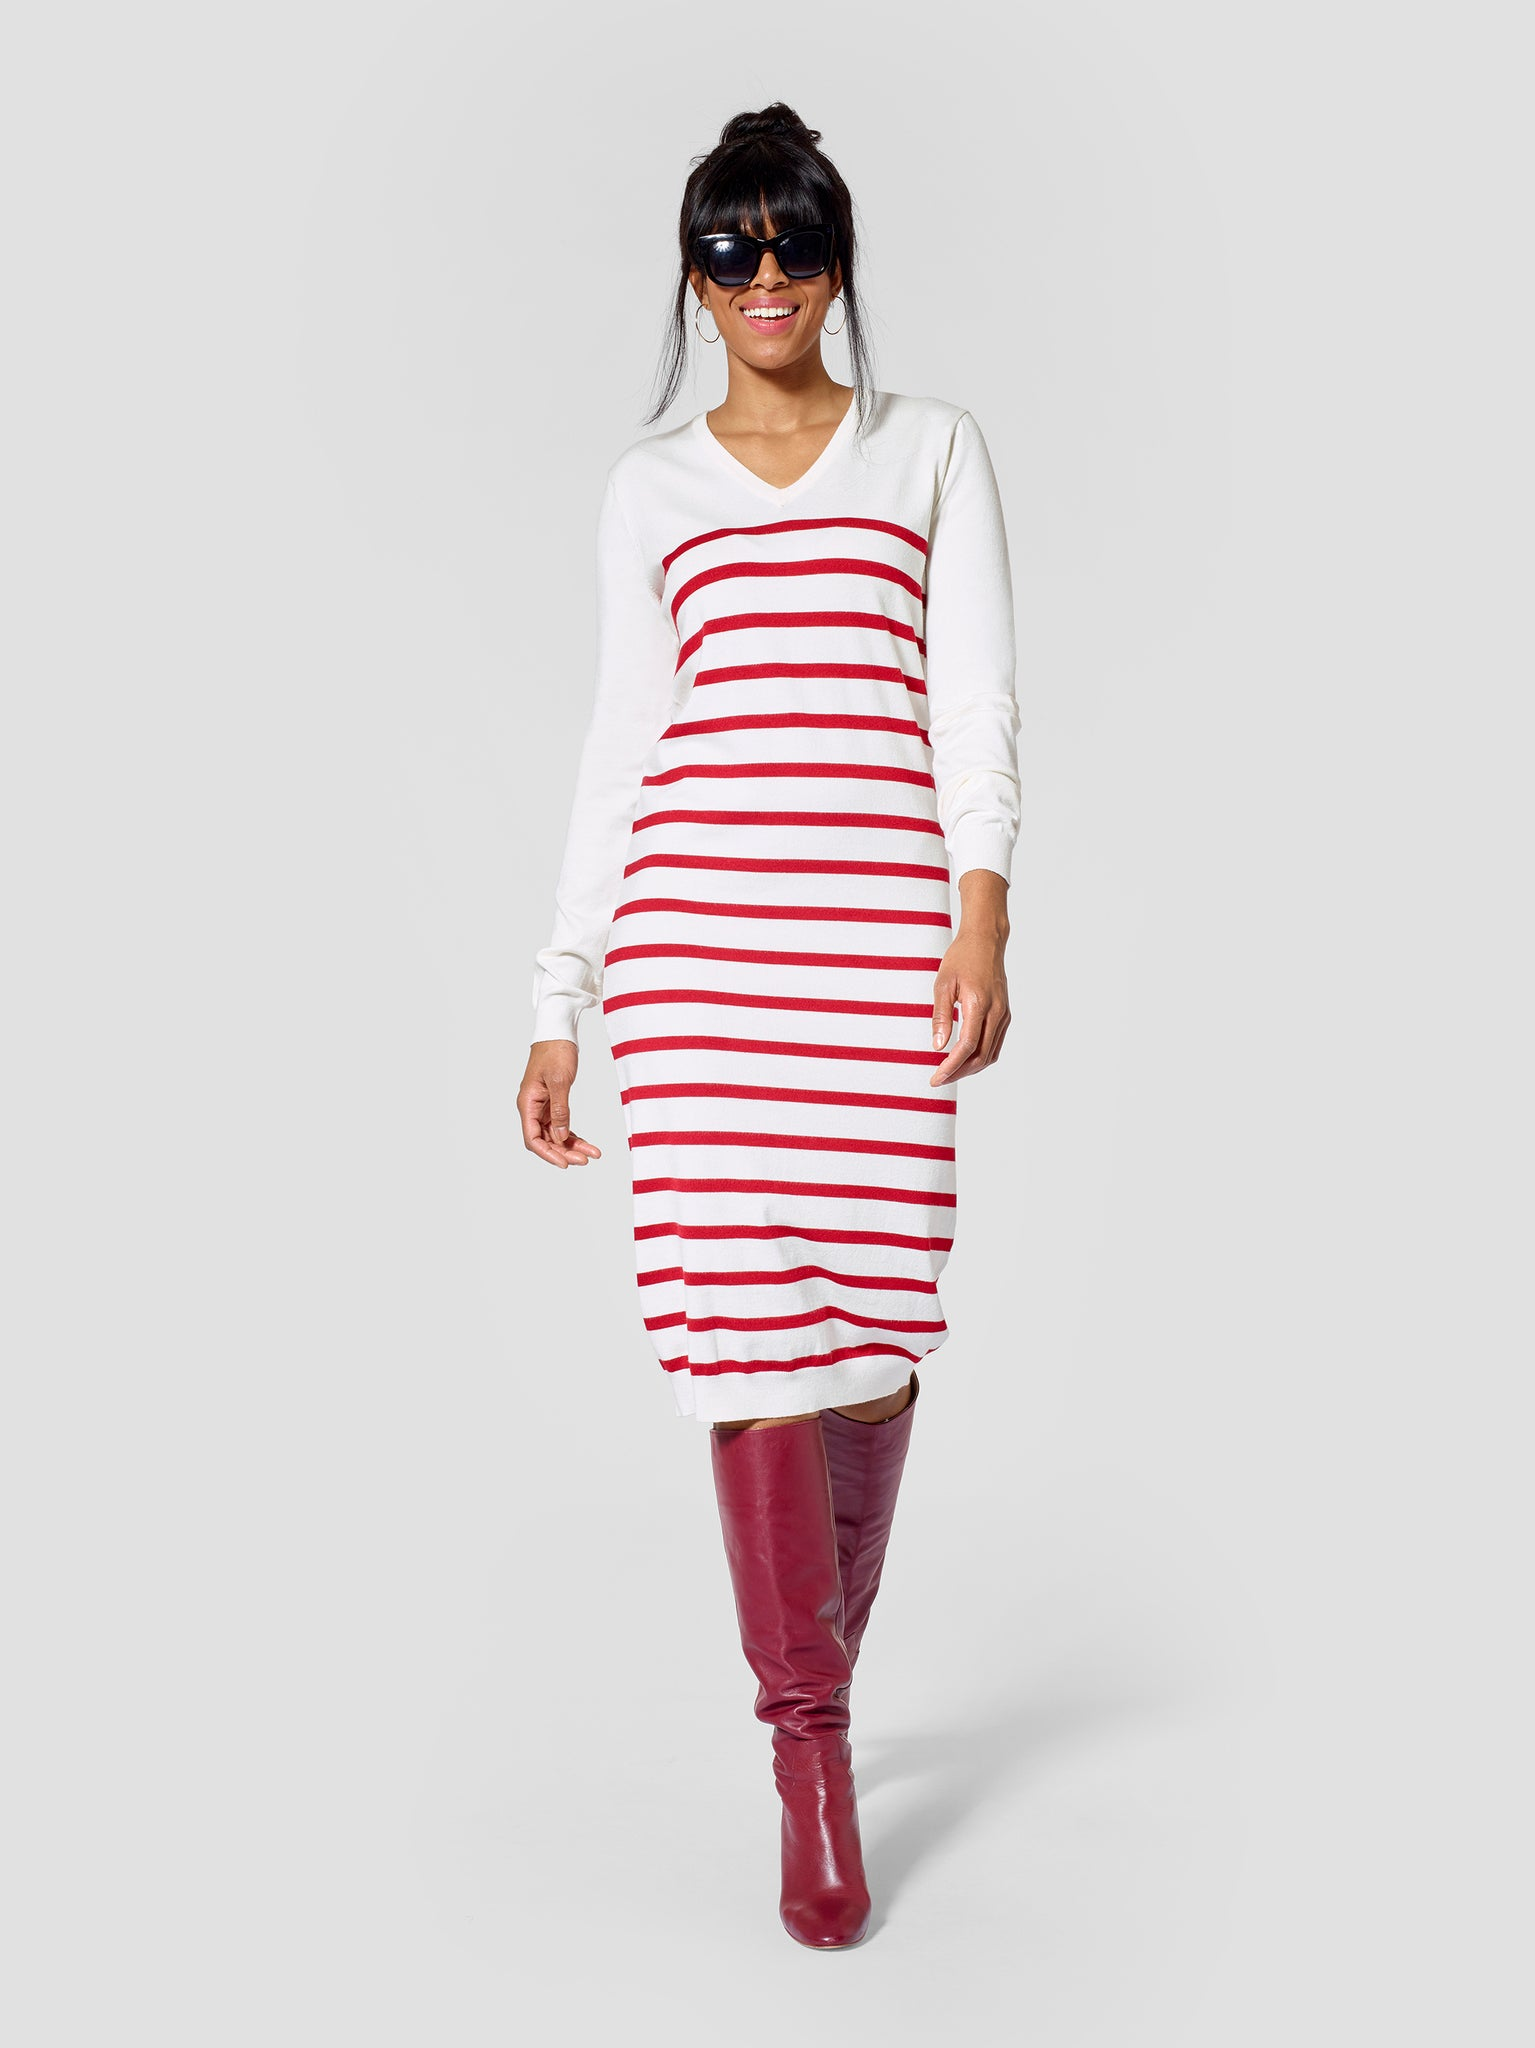 Tall Womenswear Striped V-Neck Tall Sweater Dress Tall Moi